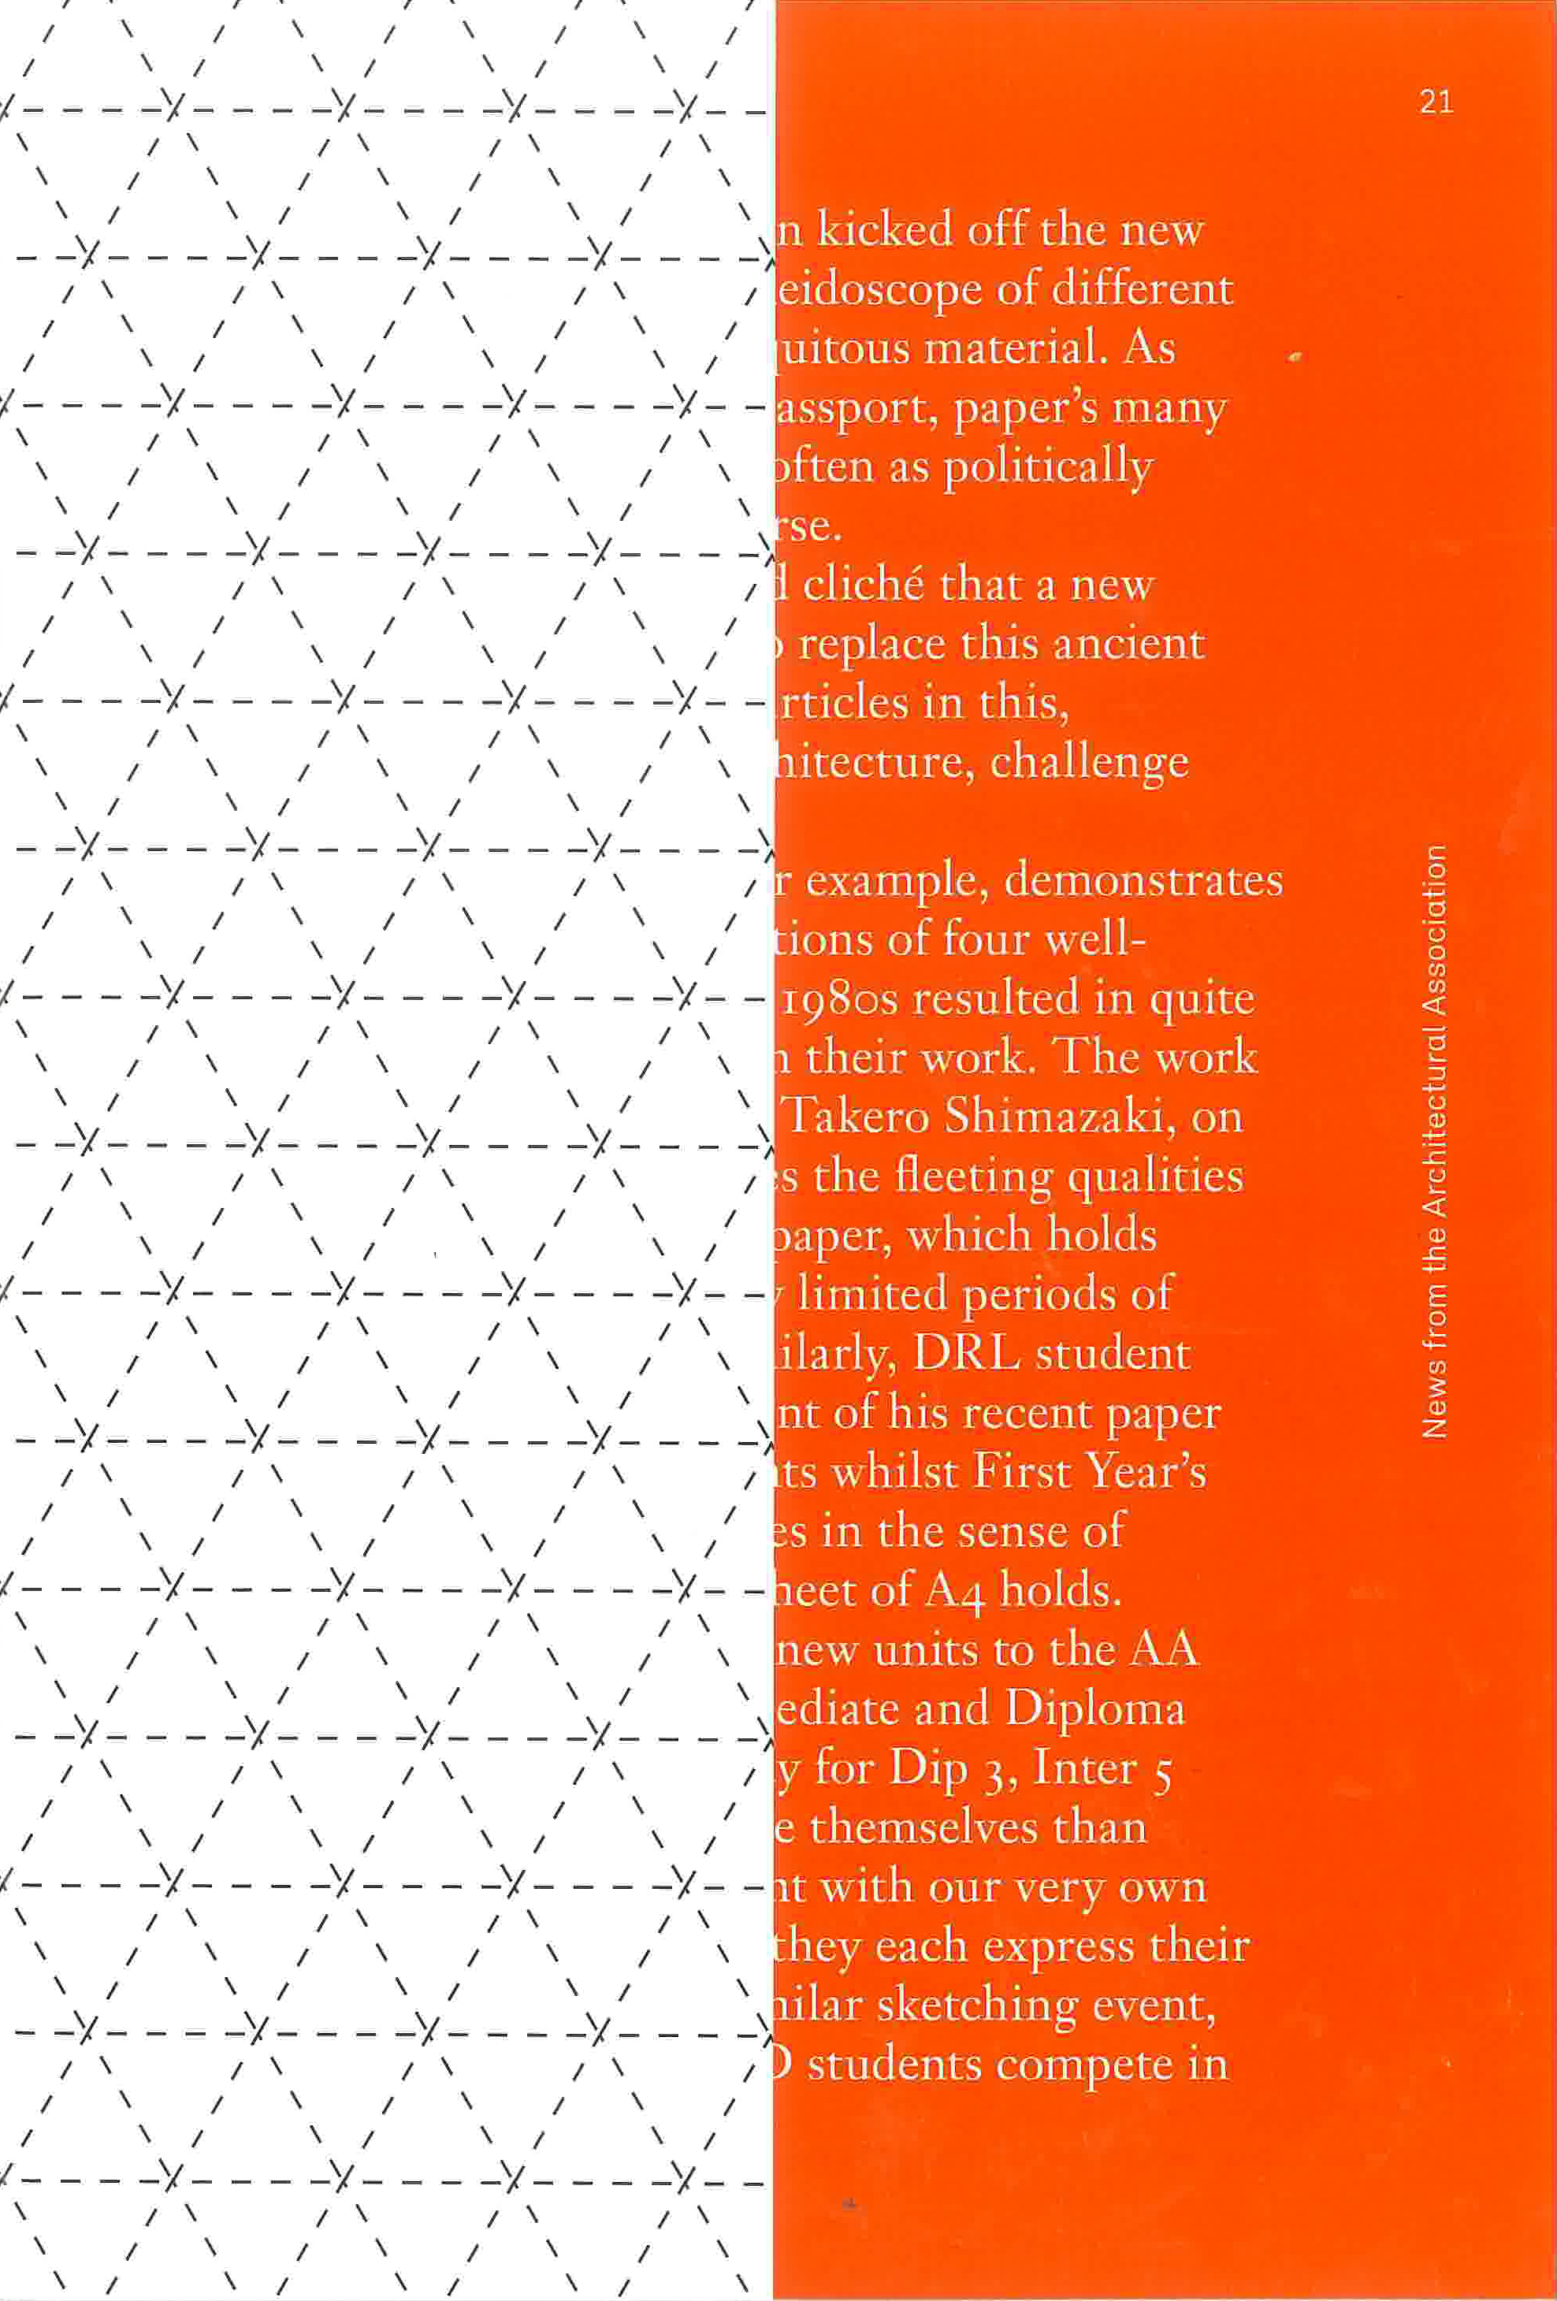 AArchitecture 21_Cover